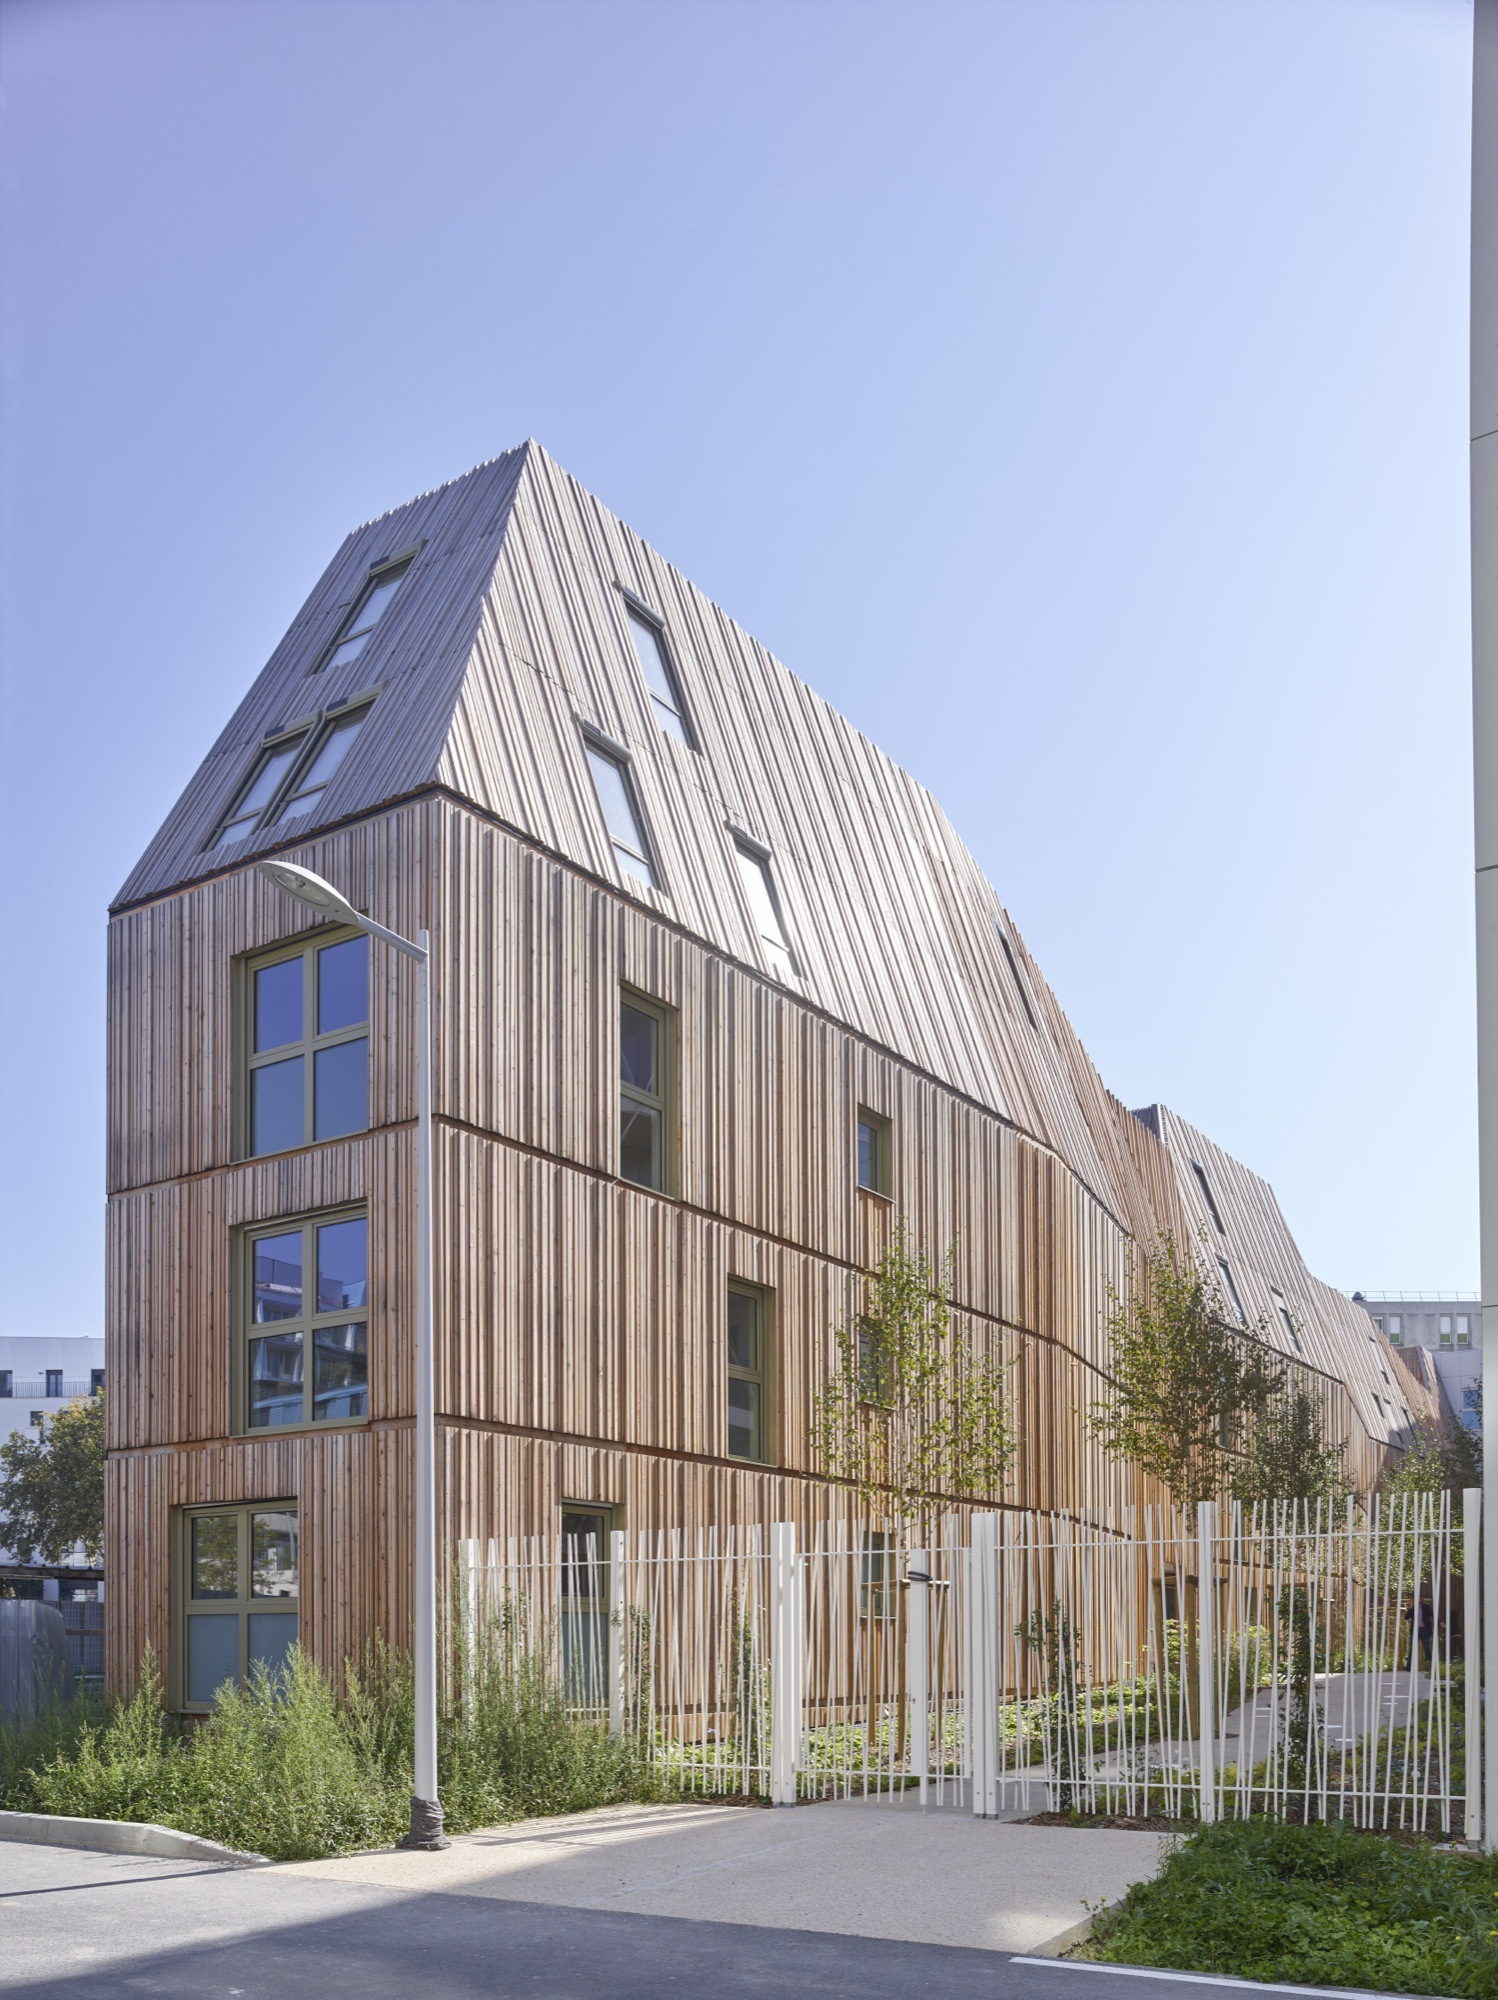 Gallery Of Rive Seine Tetrarc Architects 5